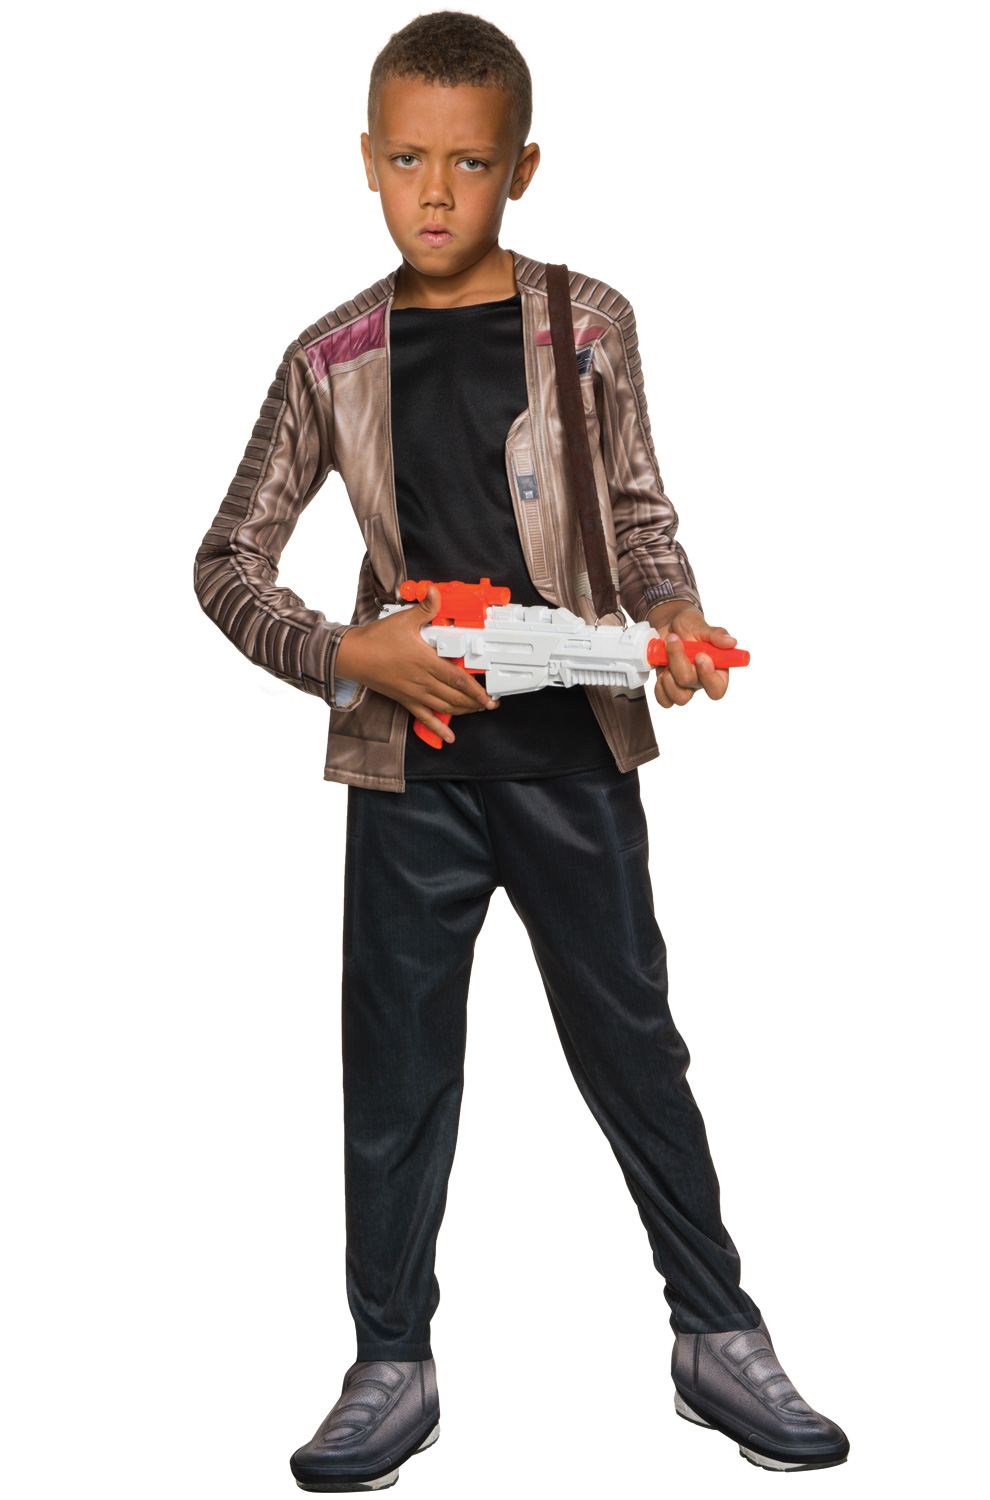 Click Here to buy Deluxe Star Wars Finn Kids Costume from Pure Costumes